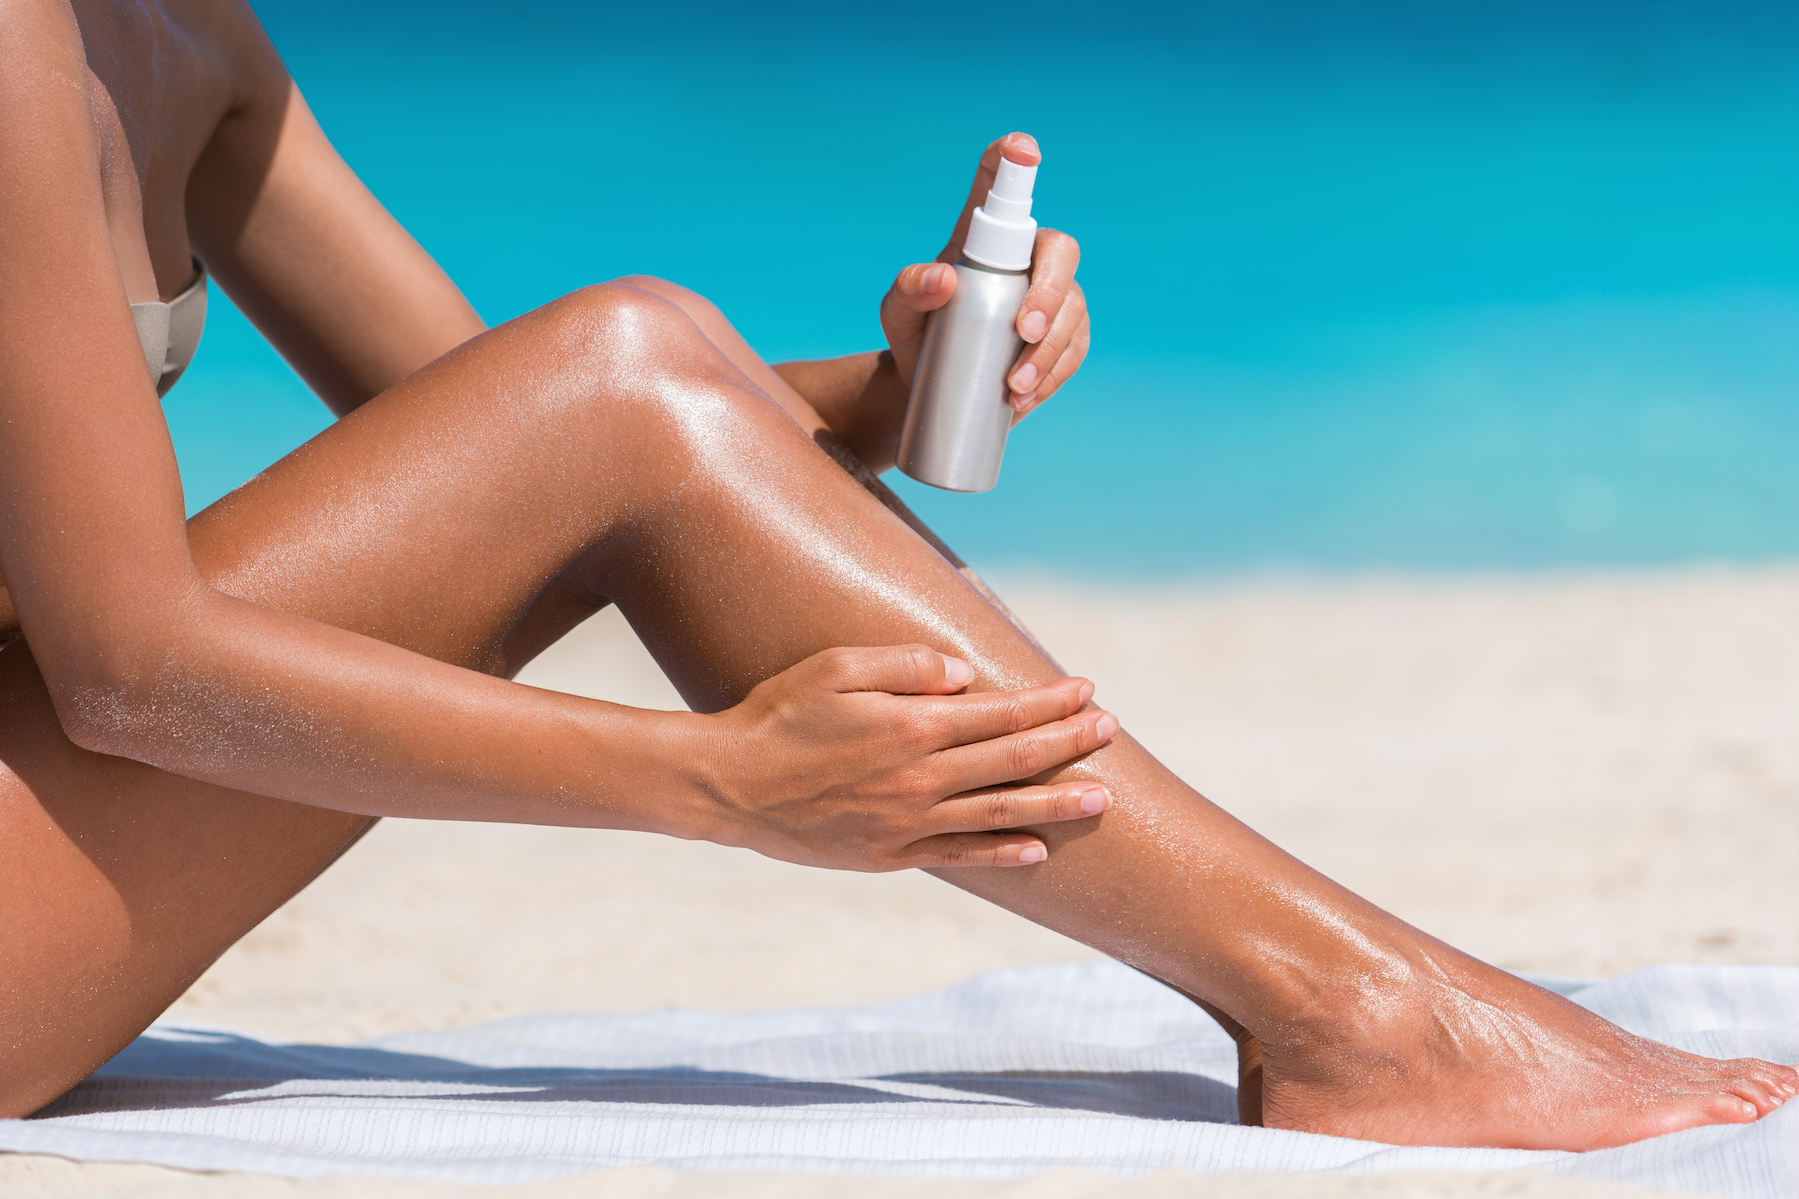 Researchers at Binghamton University and State University of New York have developed a UV skin protection coating that is made out of DNA.